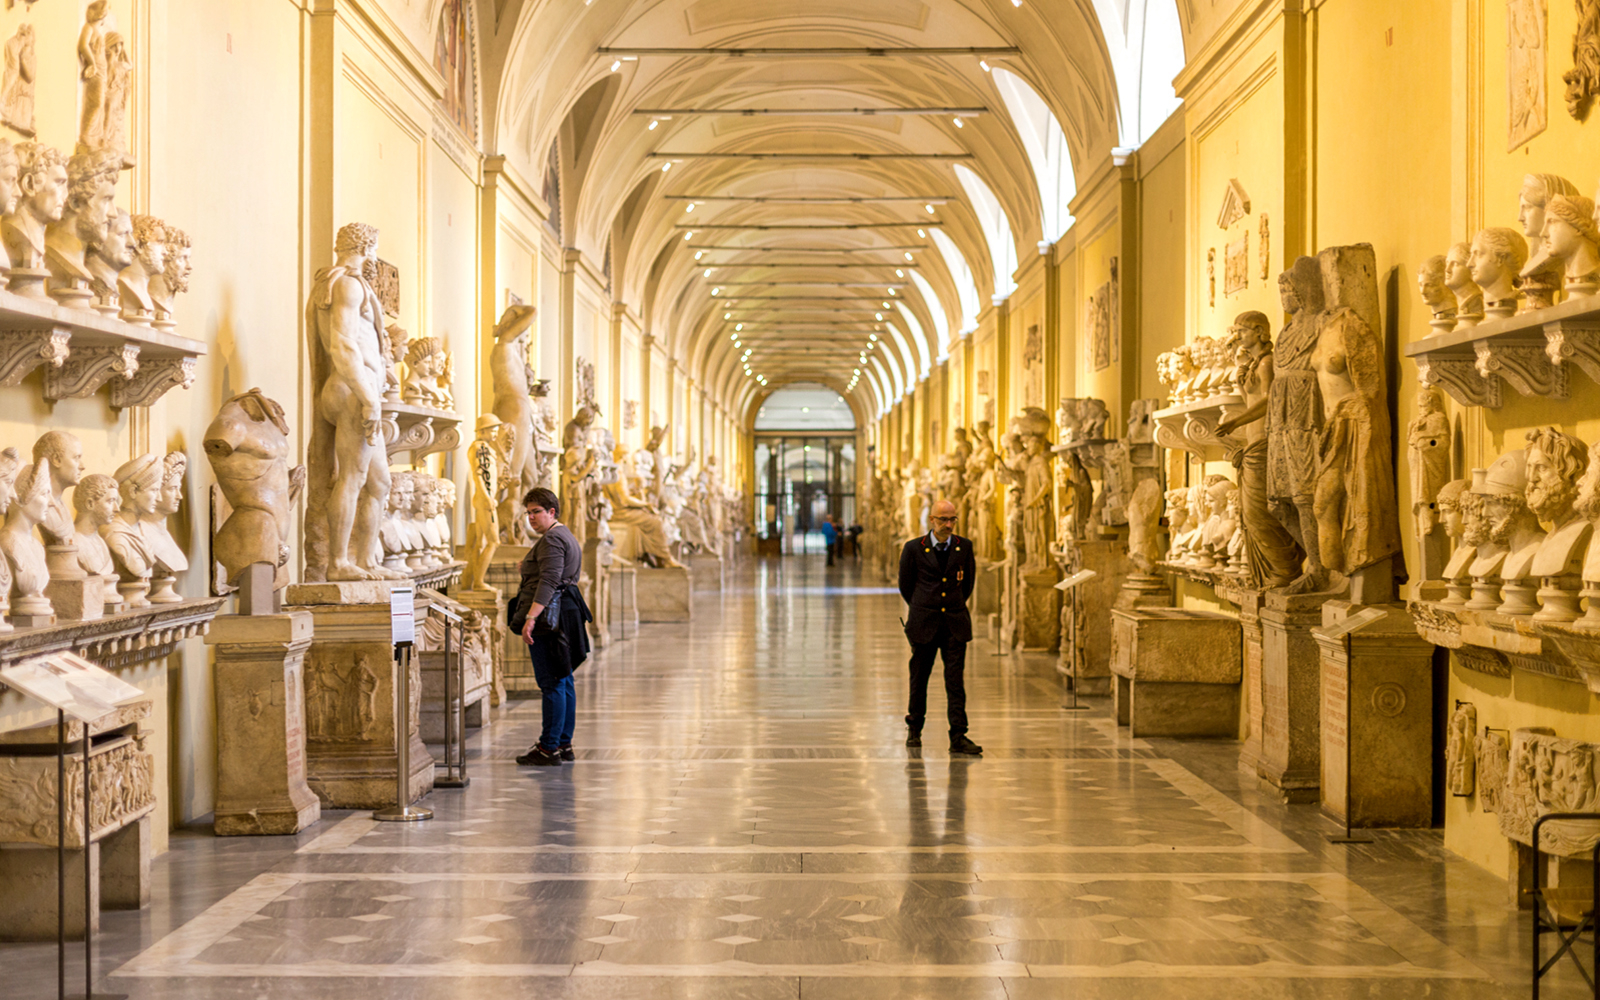 D7b55ac8 fc79 4d78 87f7 95e3a68ddc30 3137 rome vatican museum and sistine chapel skip the line tickets 05